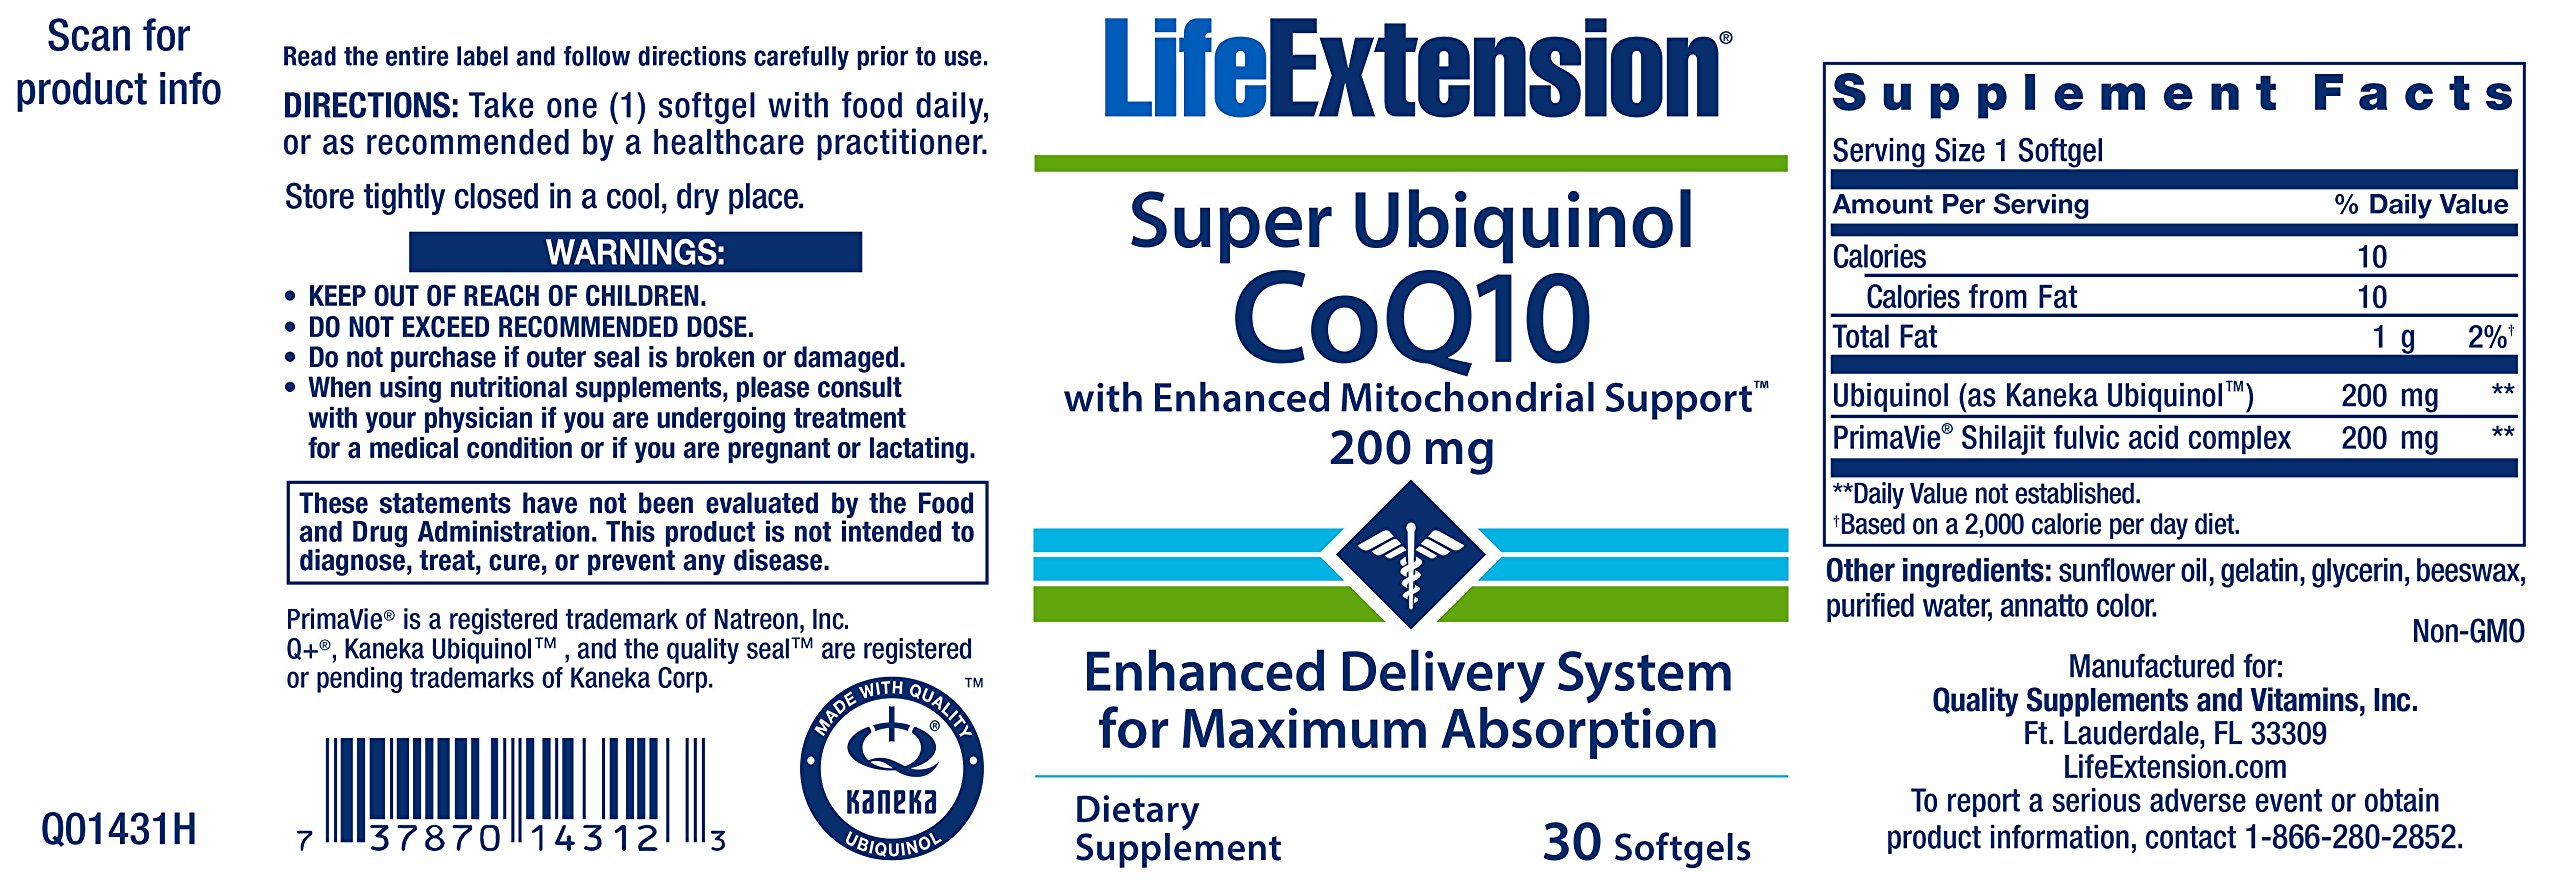 81gXgy%2BUMoL - Life Extension Super Ubiquinol CoQ10 with Enhanced Mitochondrial Support, 200mg, 30 softgels